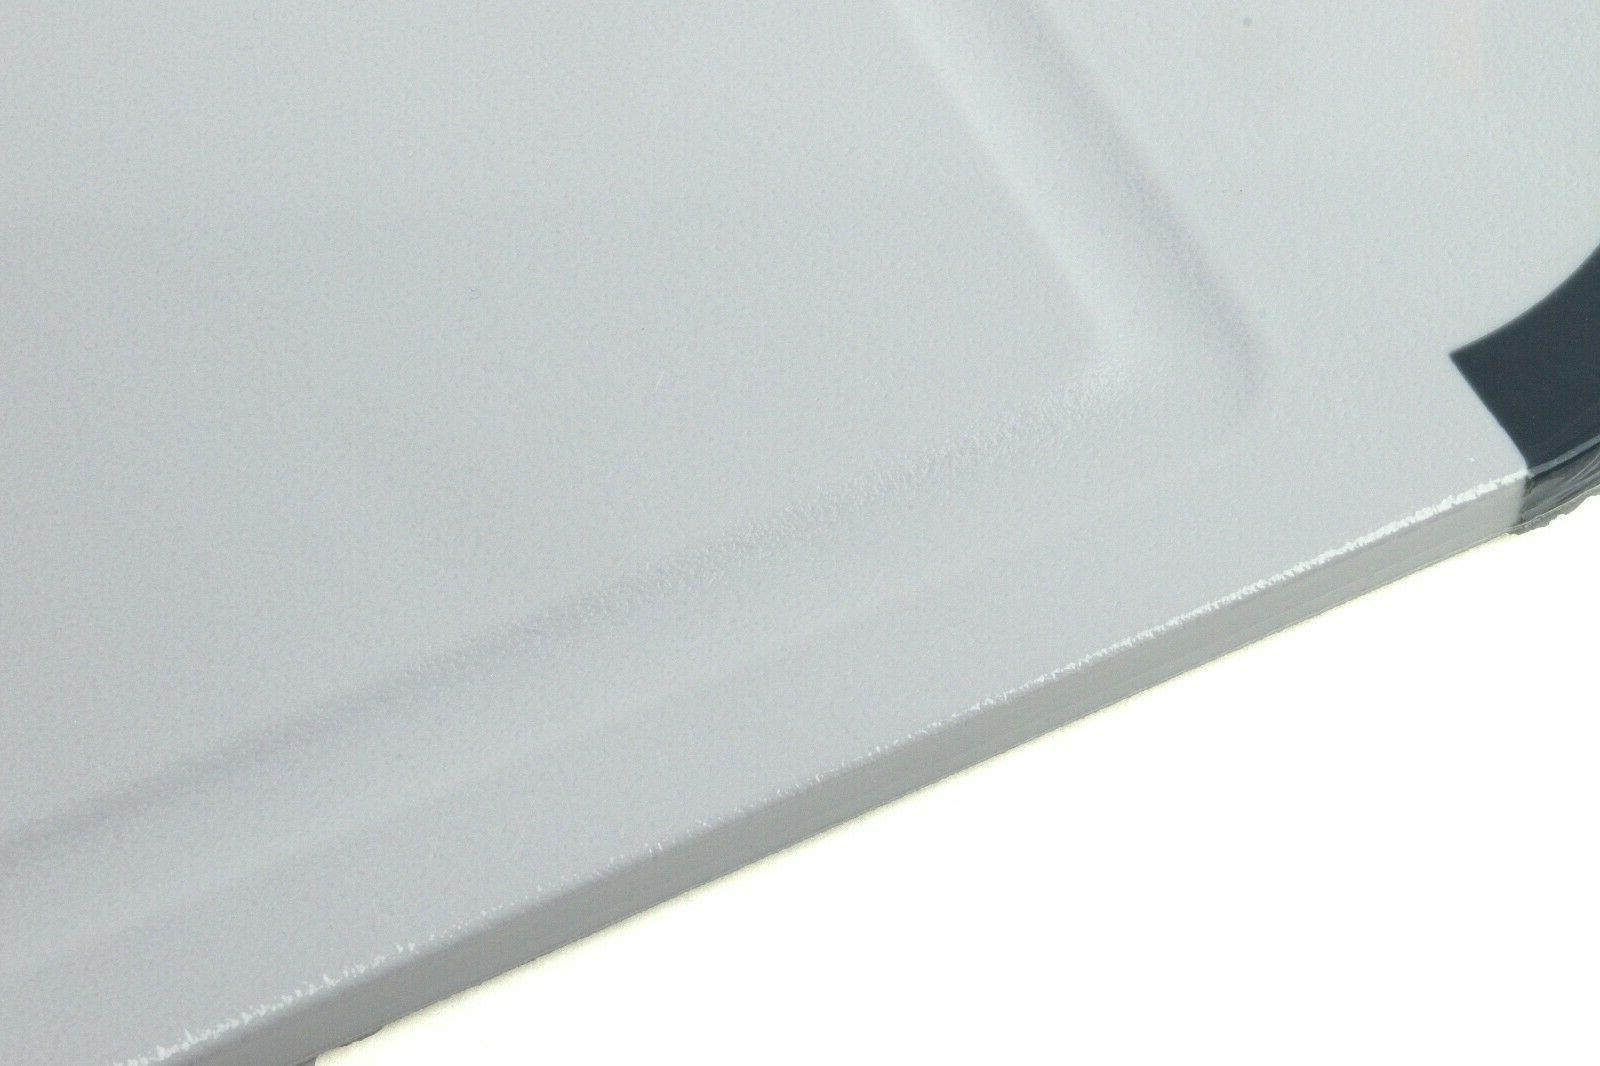 Neoflam Antibacterial Dishwasher Safe, Easy Clean,